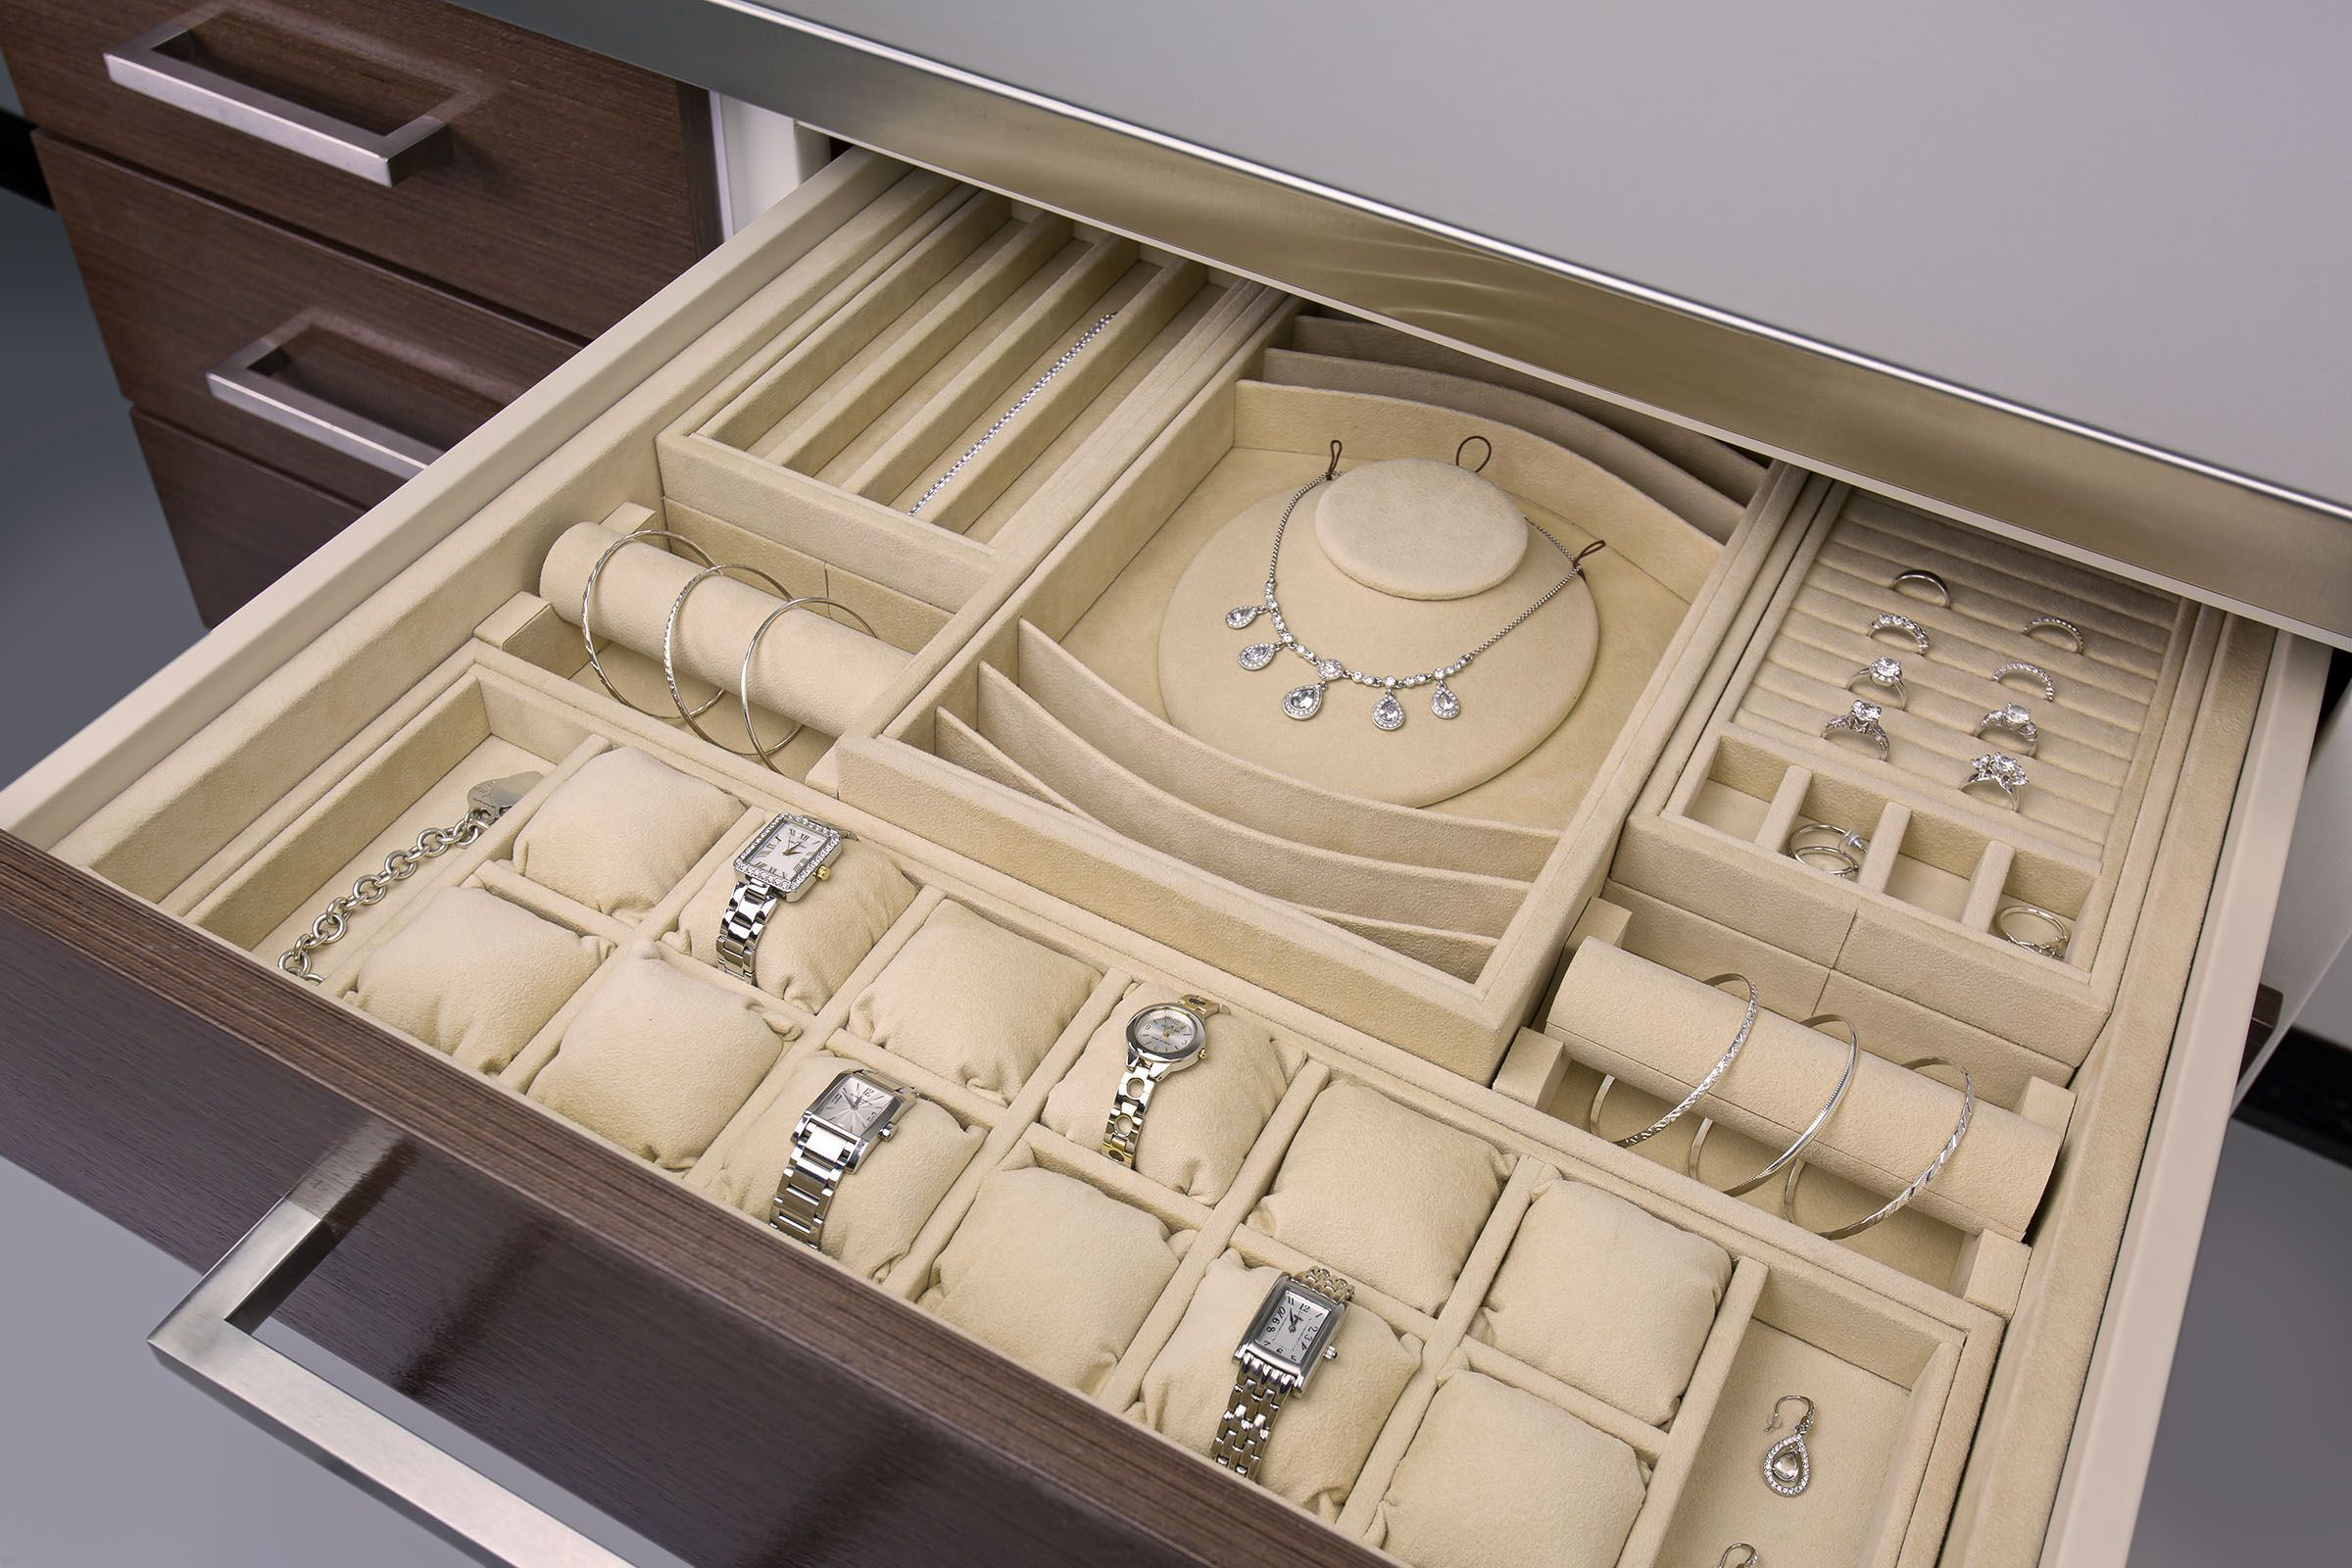 Custom Jewelry Drawer Inserts Provide Layouts Unique To Your Collection Keeping Your Jewelry Pristine Organized